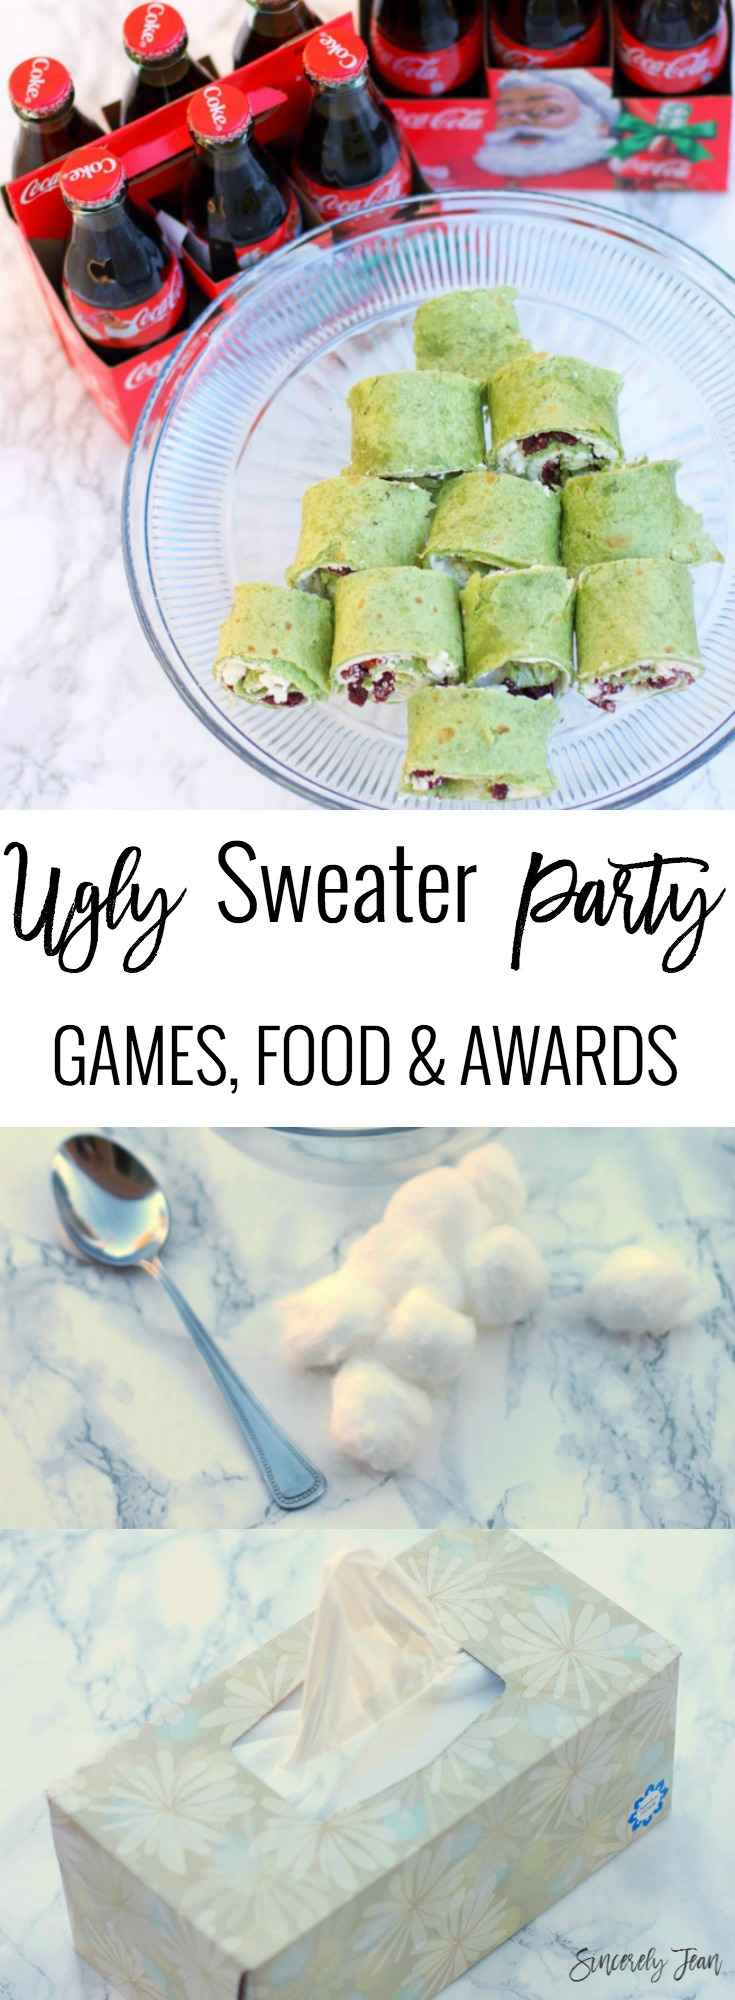 SincerelyJean.com Ugly Sweater Holiday Party How To! Appetizer Recipe, Food and Drink Ideas, Games and Awards. Try these Cream Cheese Cranberry Pinwheels